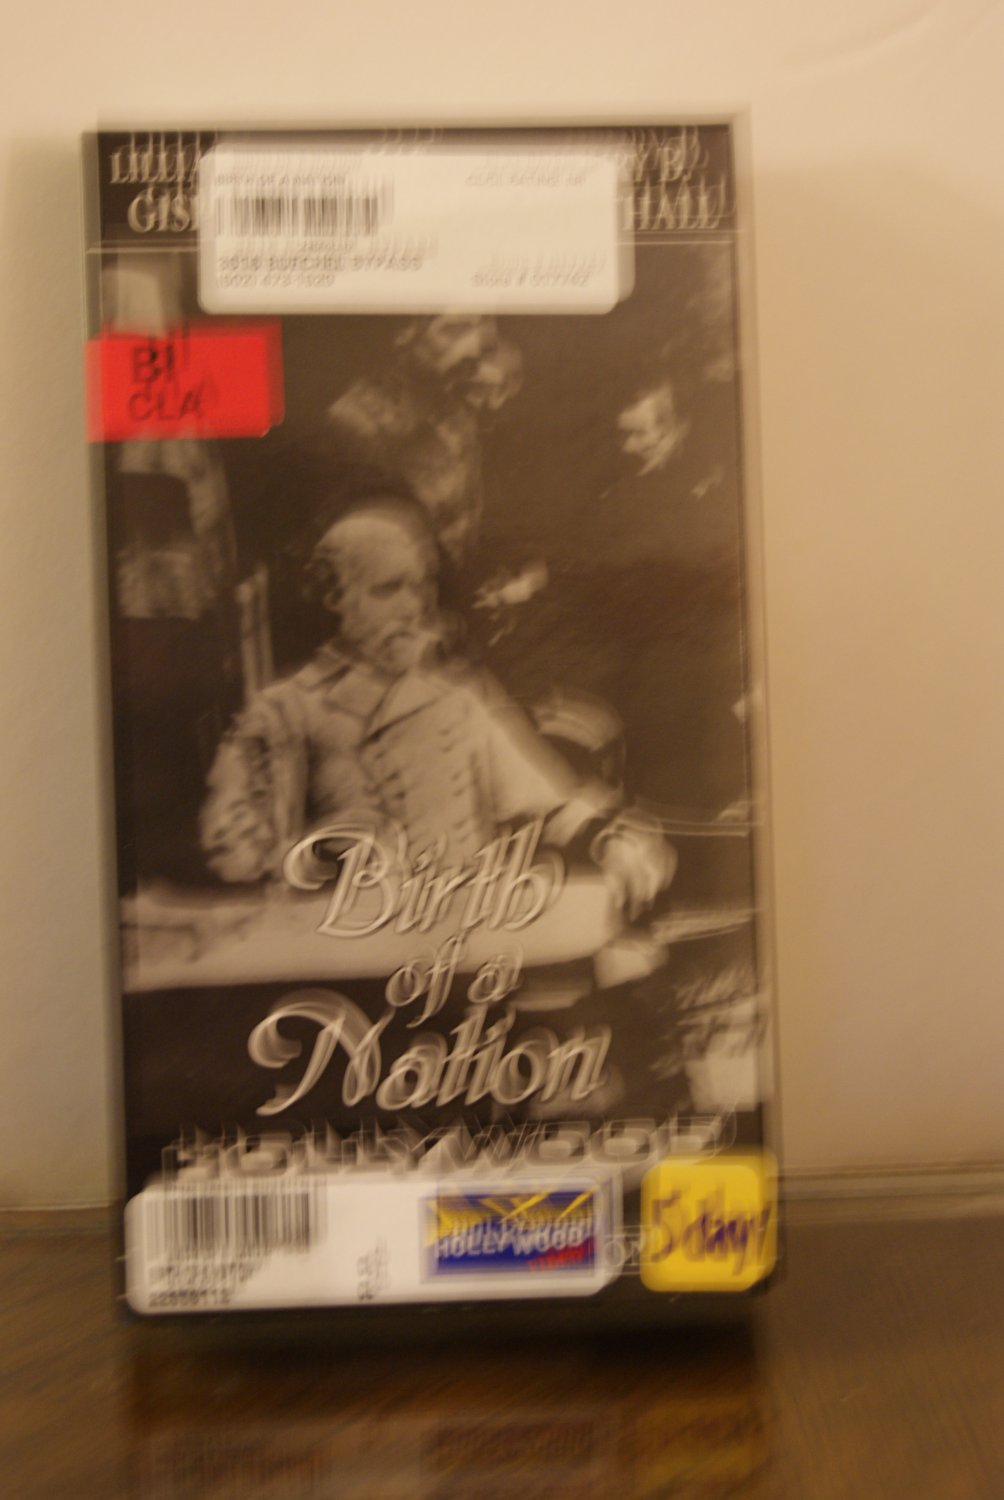 Birth of a Nation ( AKA The Clansman ) VHS tape